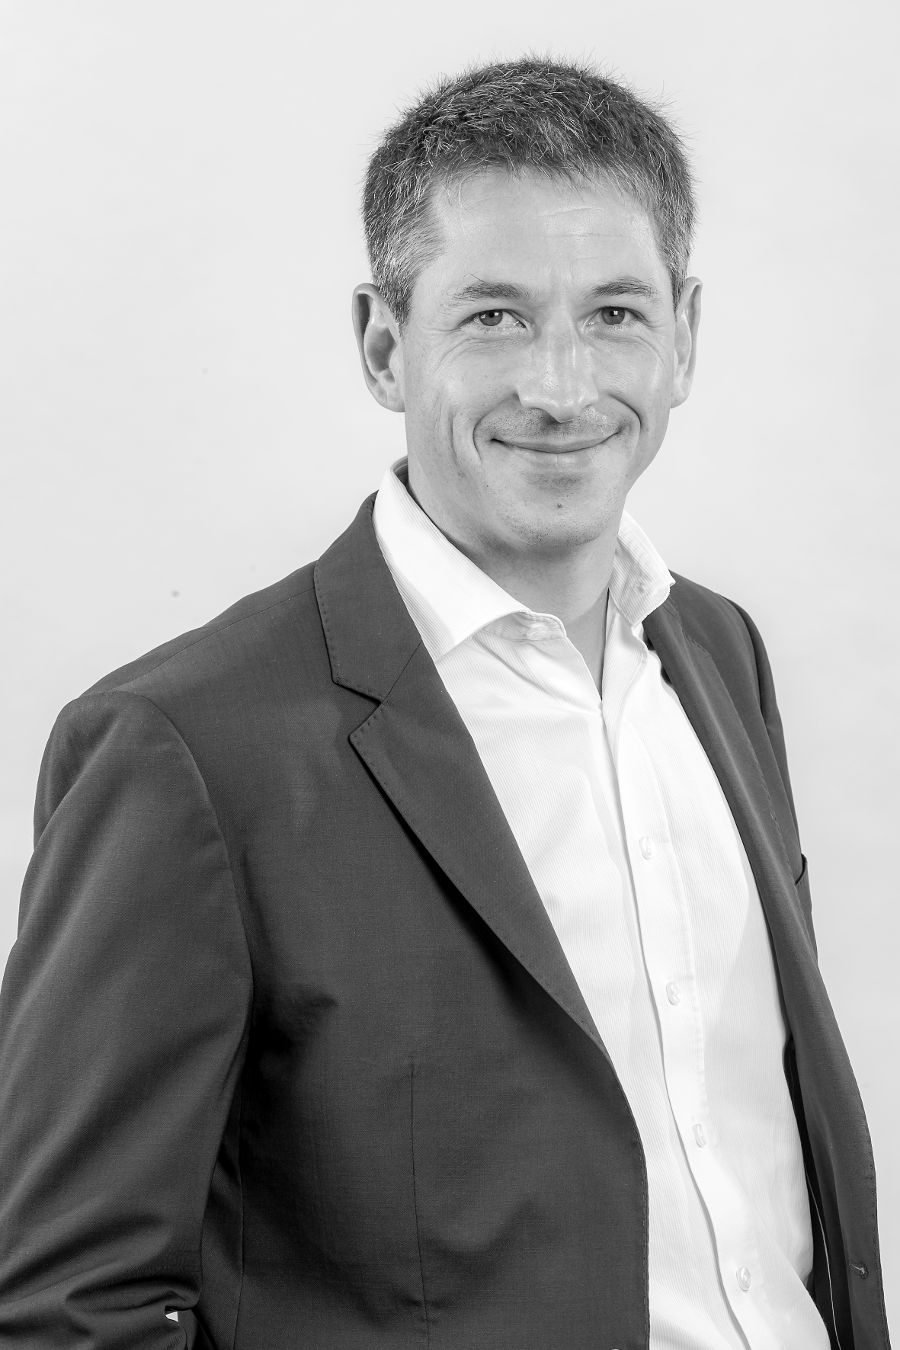 dimitri de sart  u2013 intakt law firm